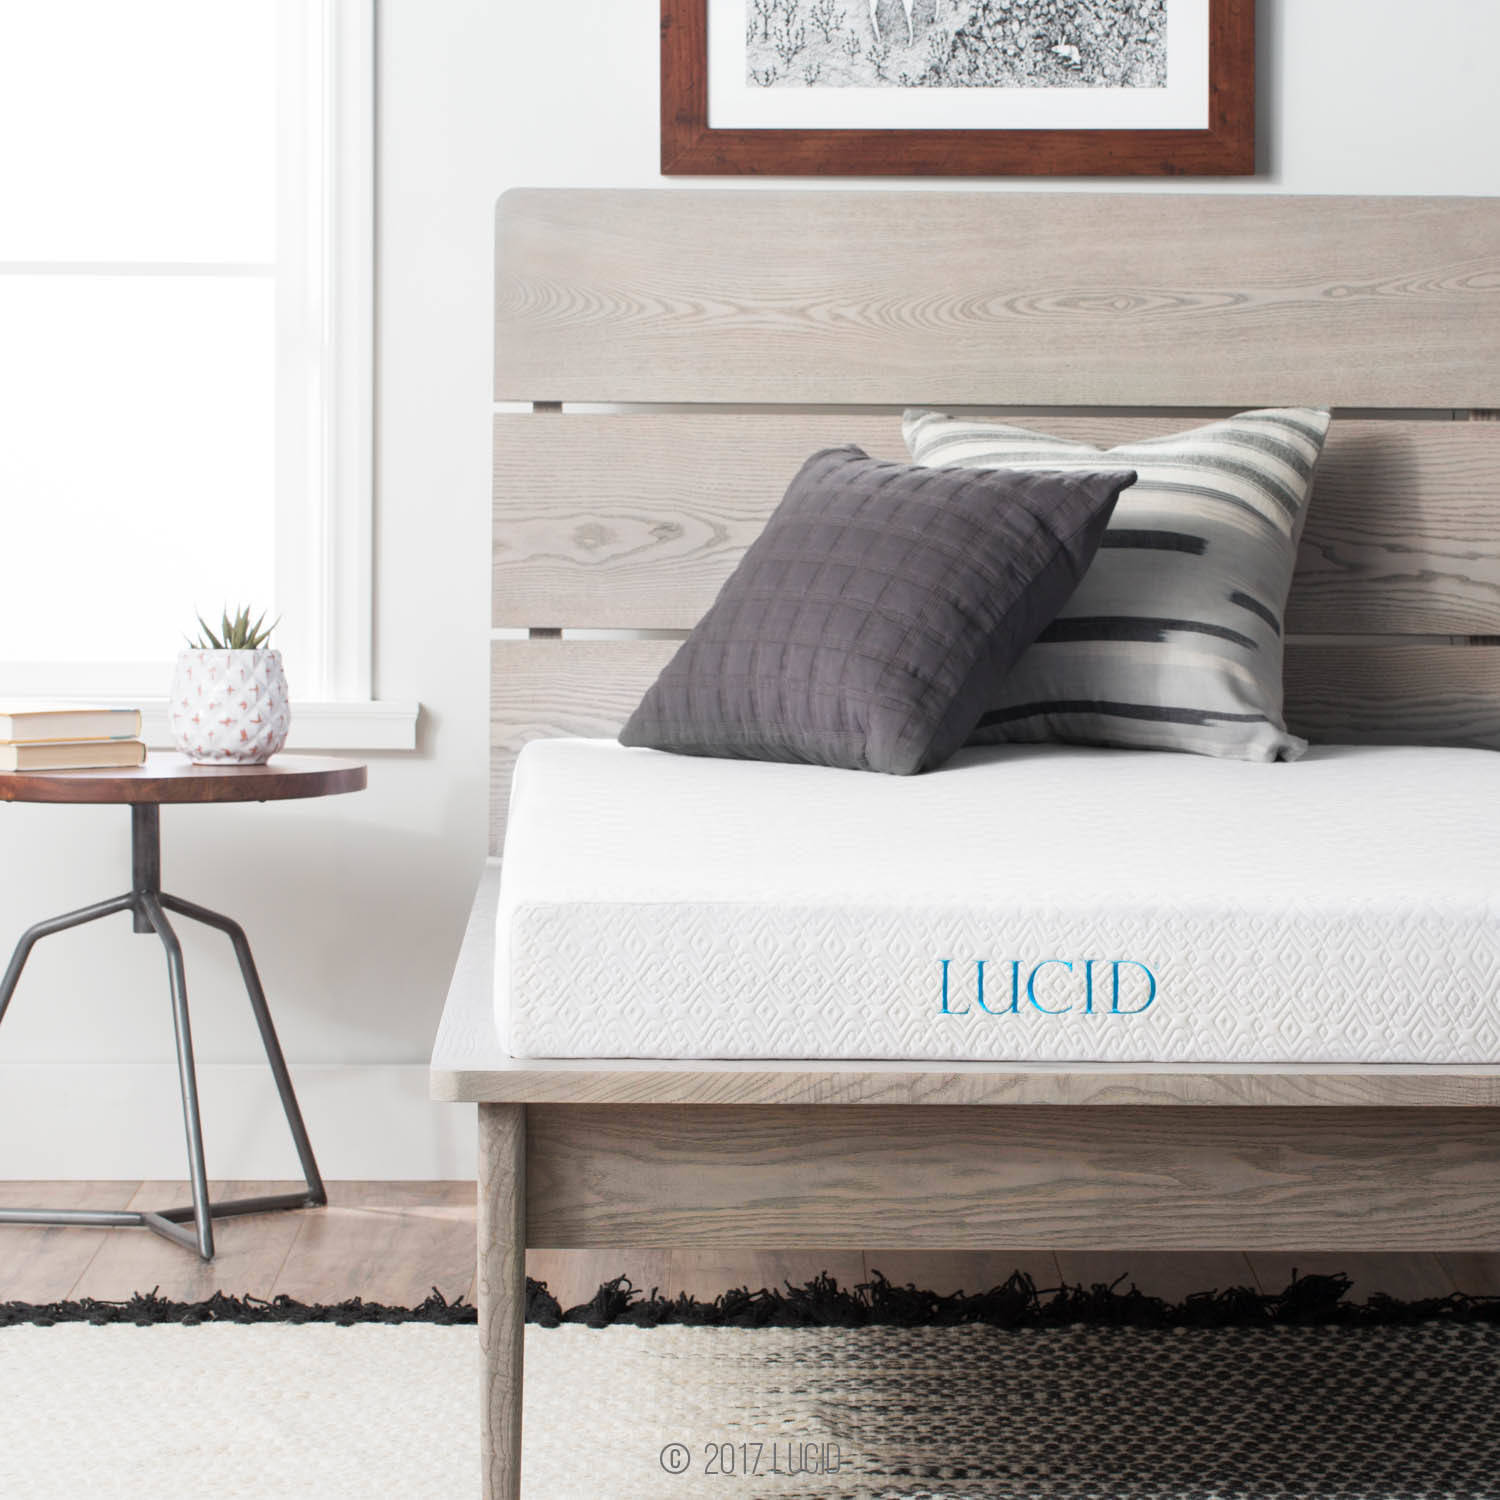 Lucid 5 Inch Gel Memory Foam Mattress, Multiple Sizes by CVB Inc.